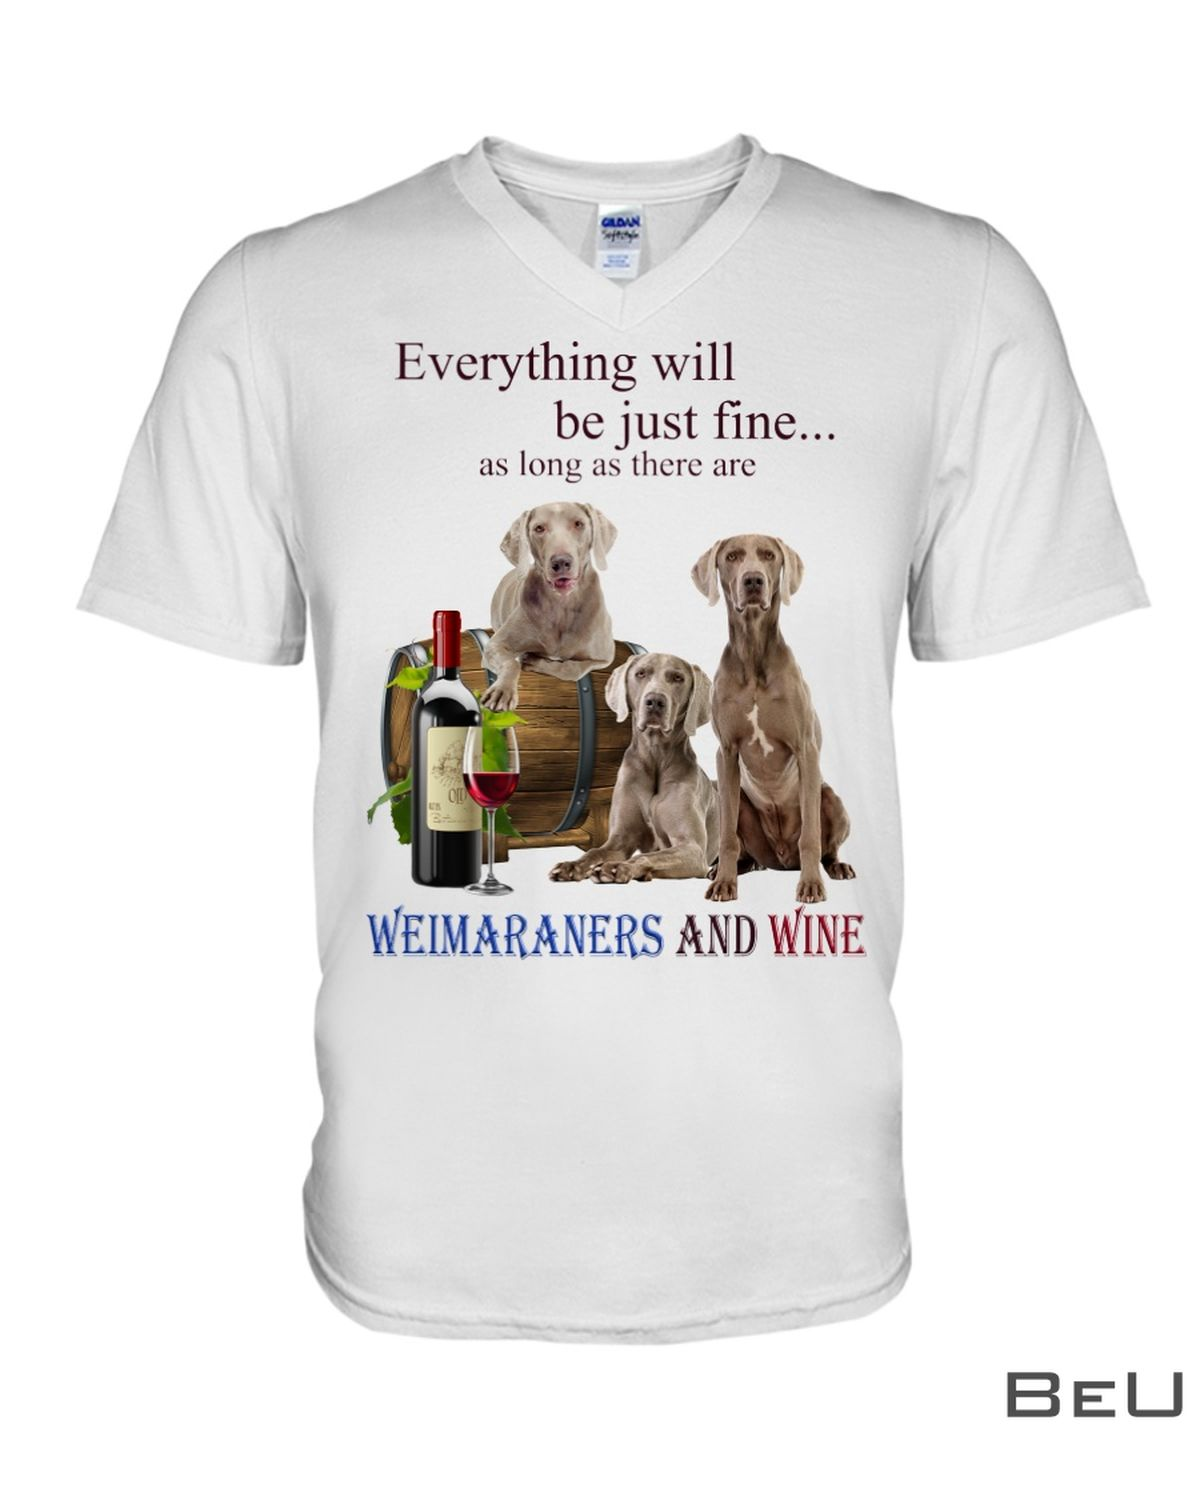 Everything Will Be Just Fine As Long As There Are Weimaraners And Wine Shirt x